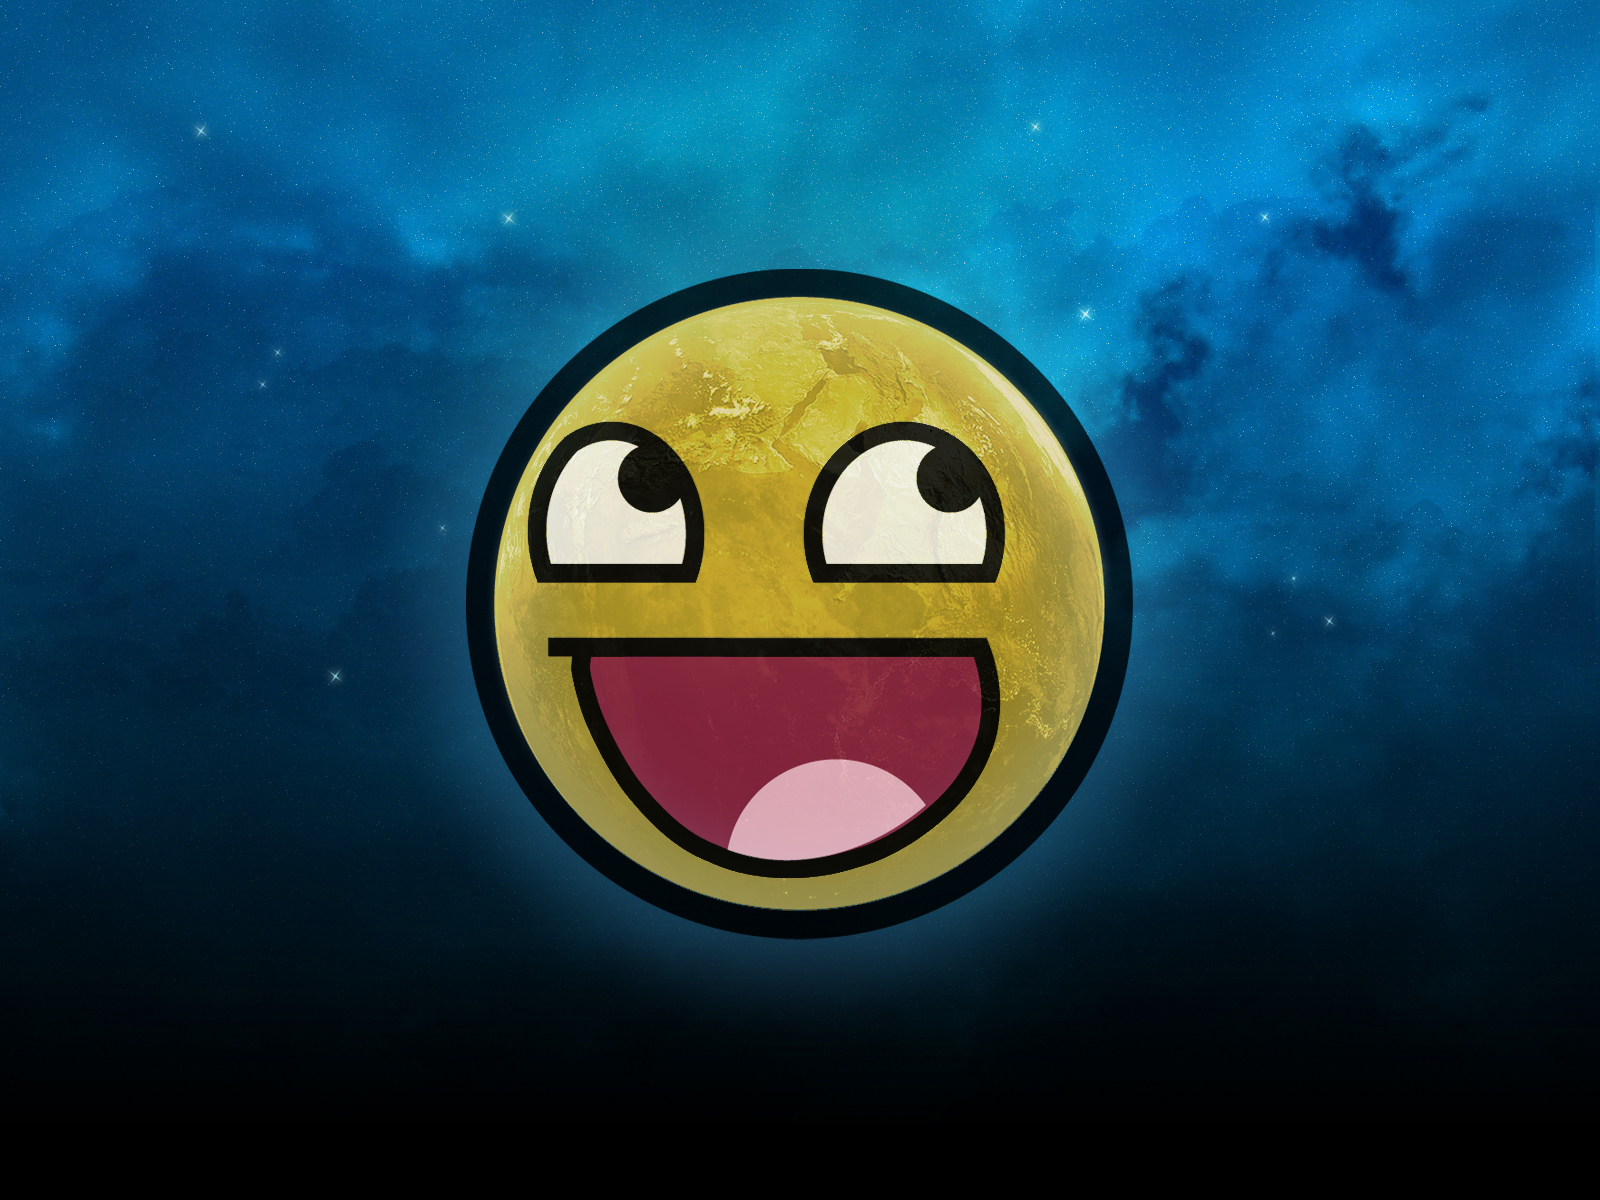 Awesome Smiley Face Backgrounds Images Pictures   Becuo 1600x1200